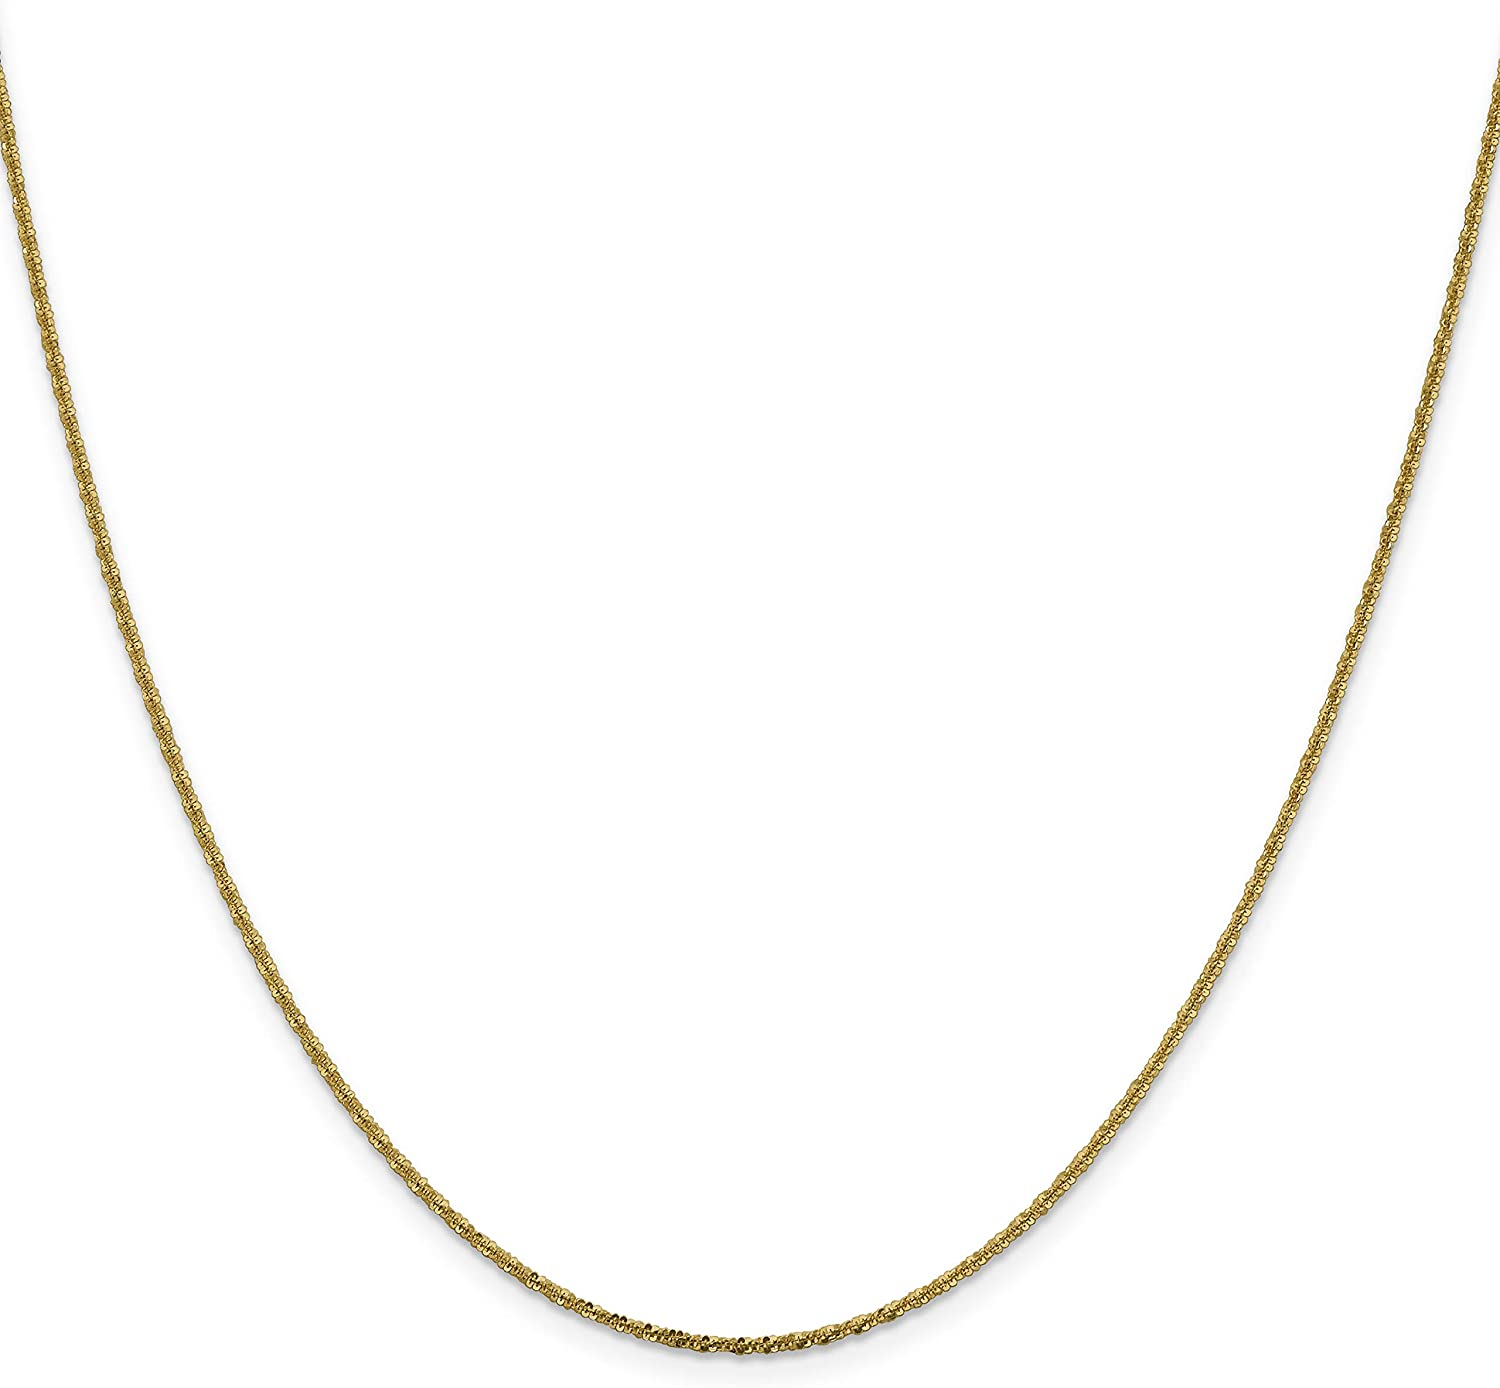 14k Yellow Gold 18in 1.50mm Cyclone Necklace Chain